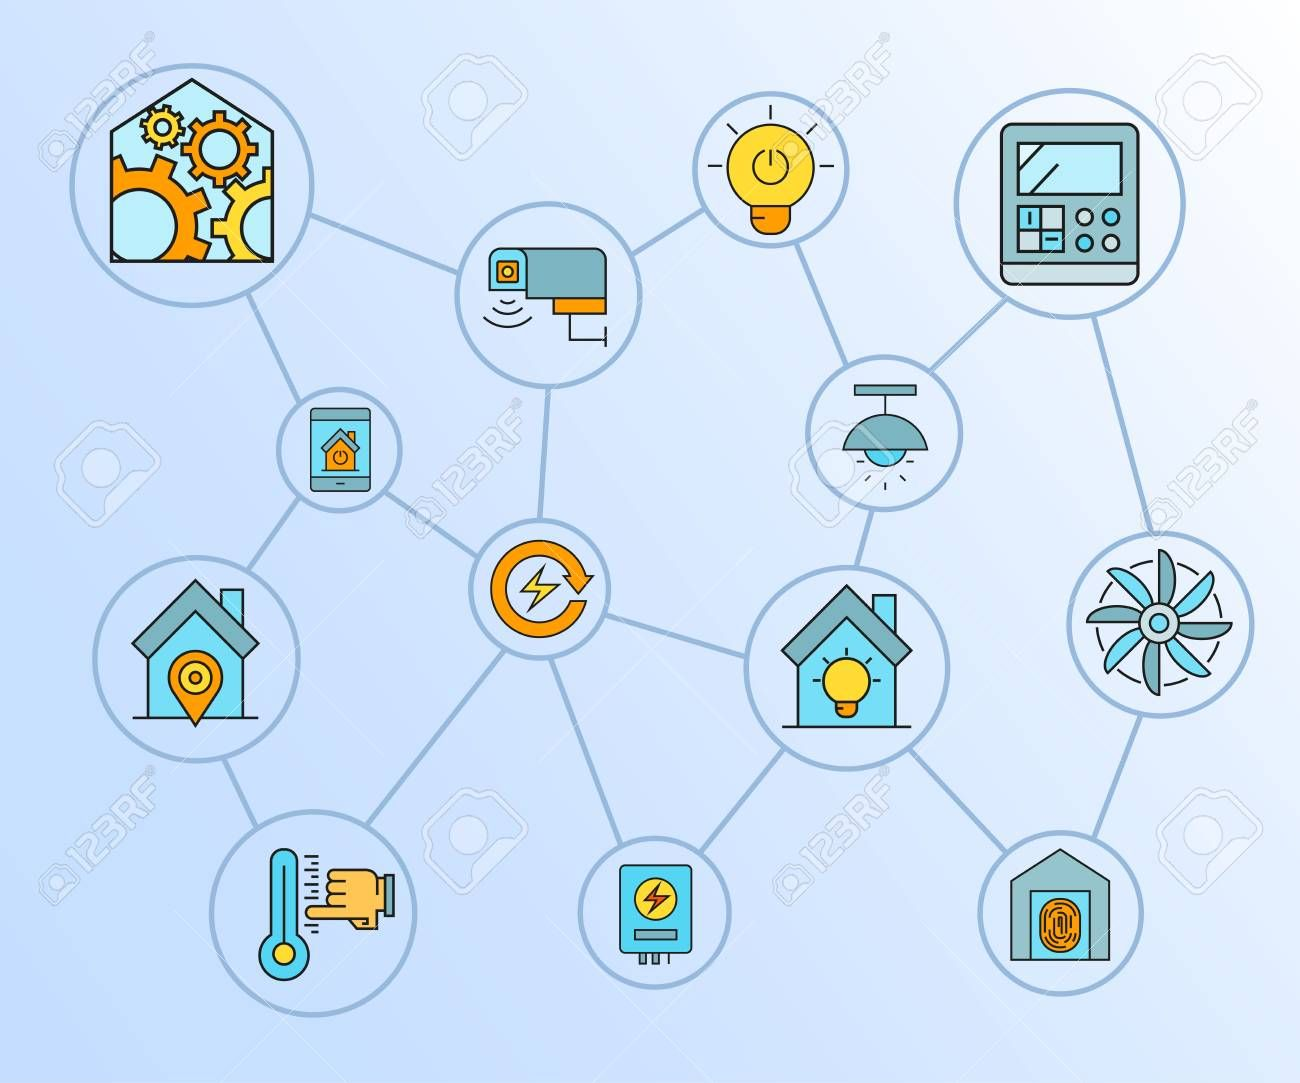 smart home, home automation and home appliance concept network , #Aff, #automation, #home, #smart, #network, #concept